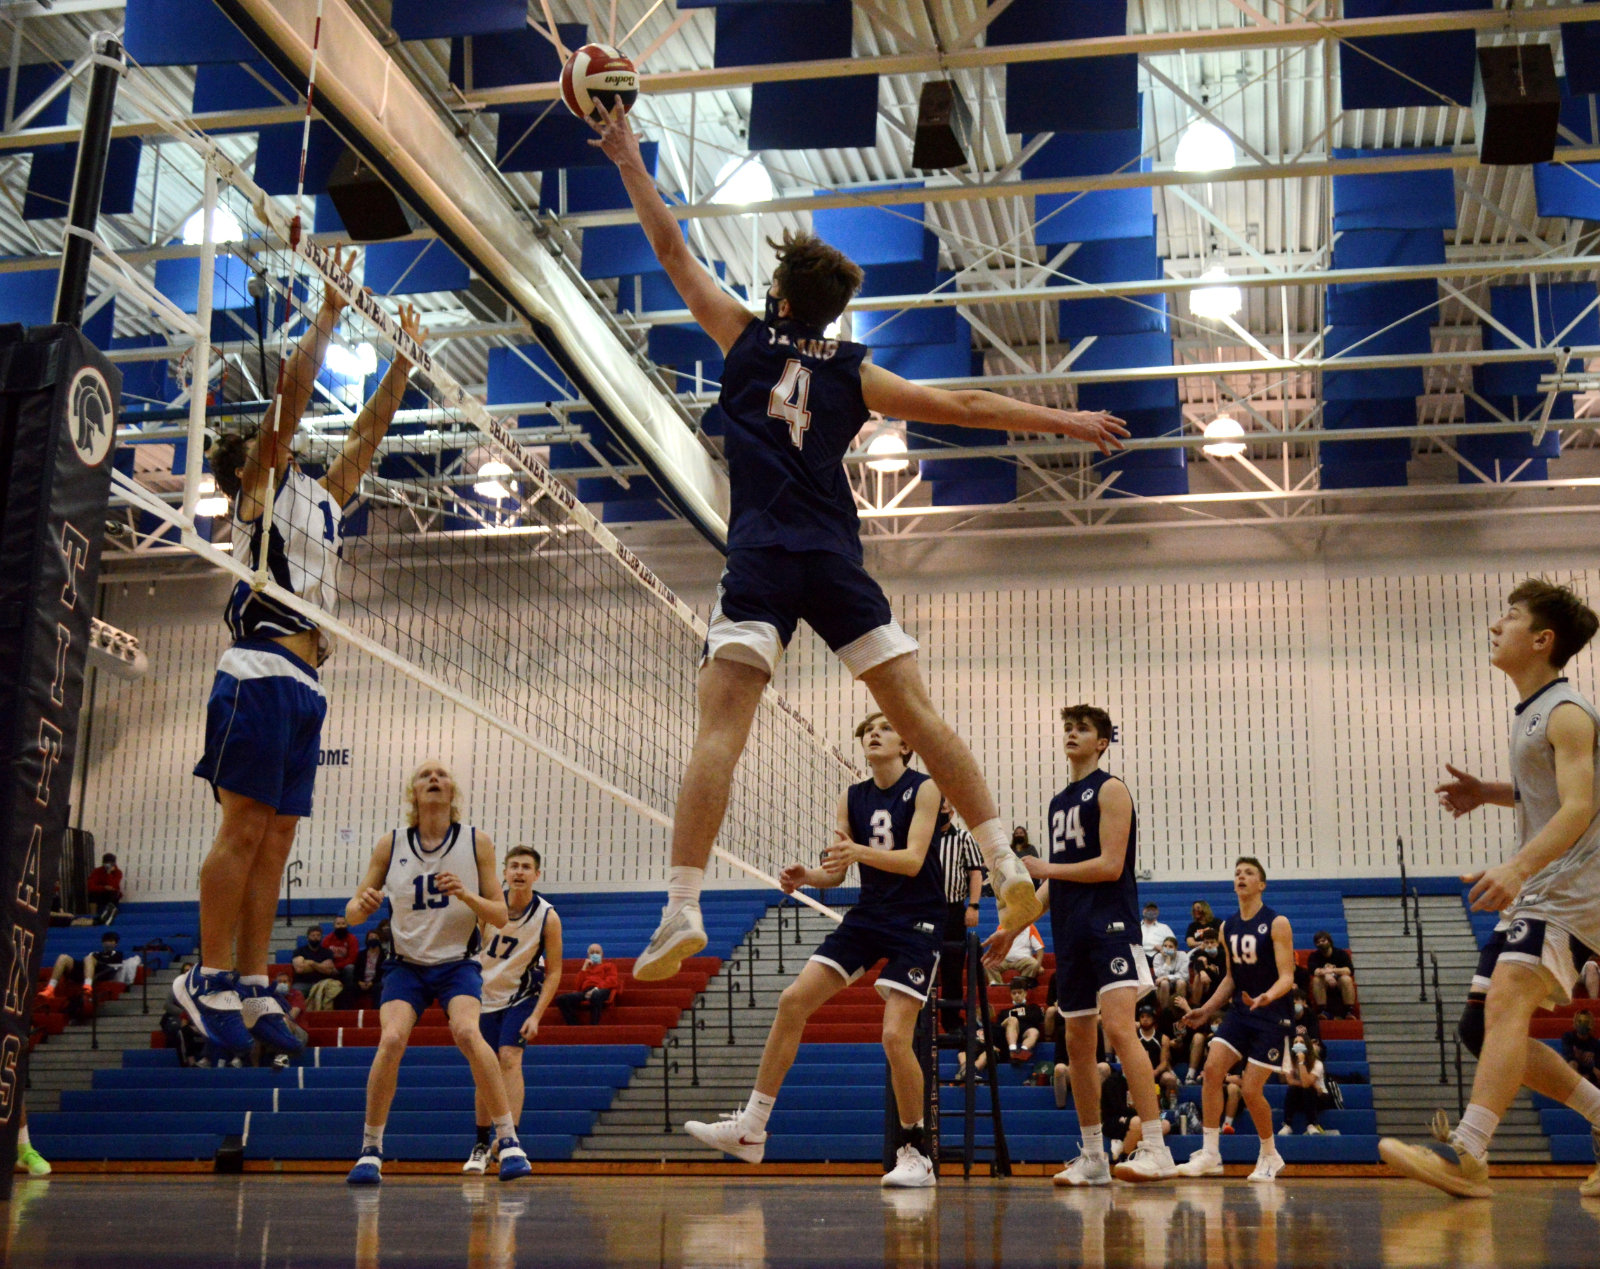 Shaler Area boys volleyball lacks varsity experience but 'stacks up well' with top teams